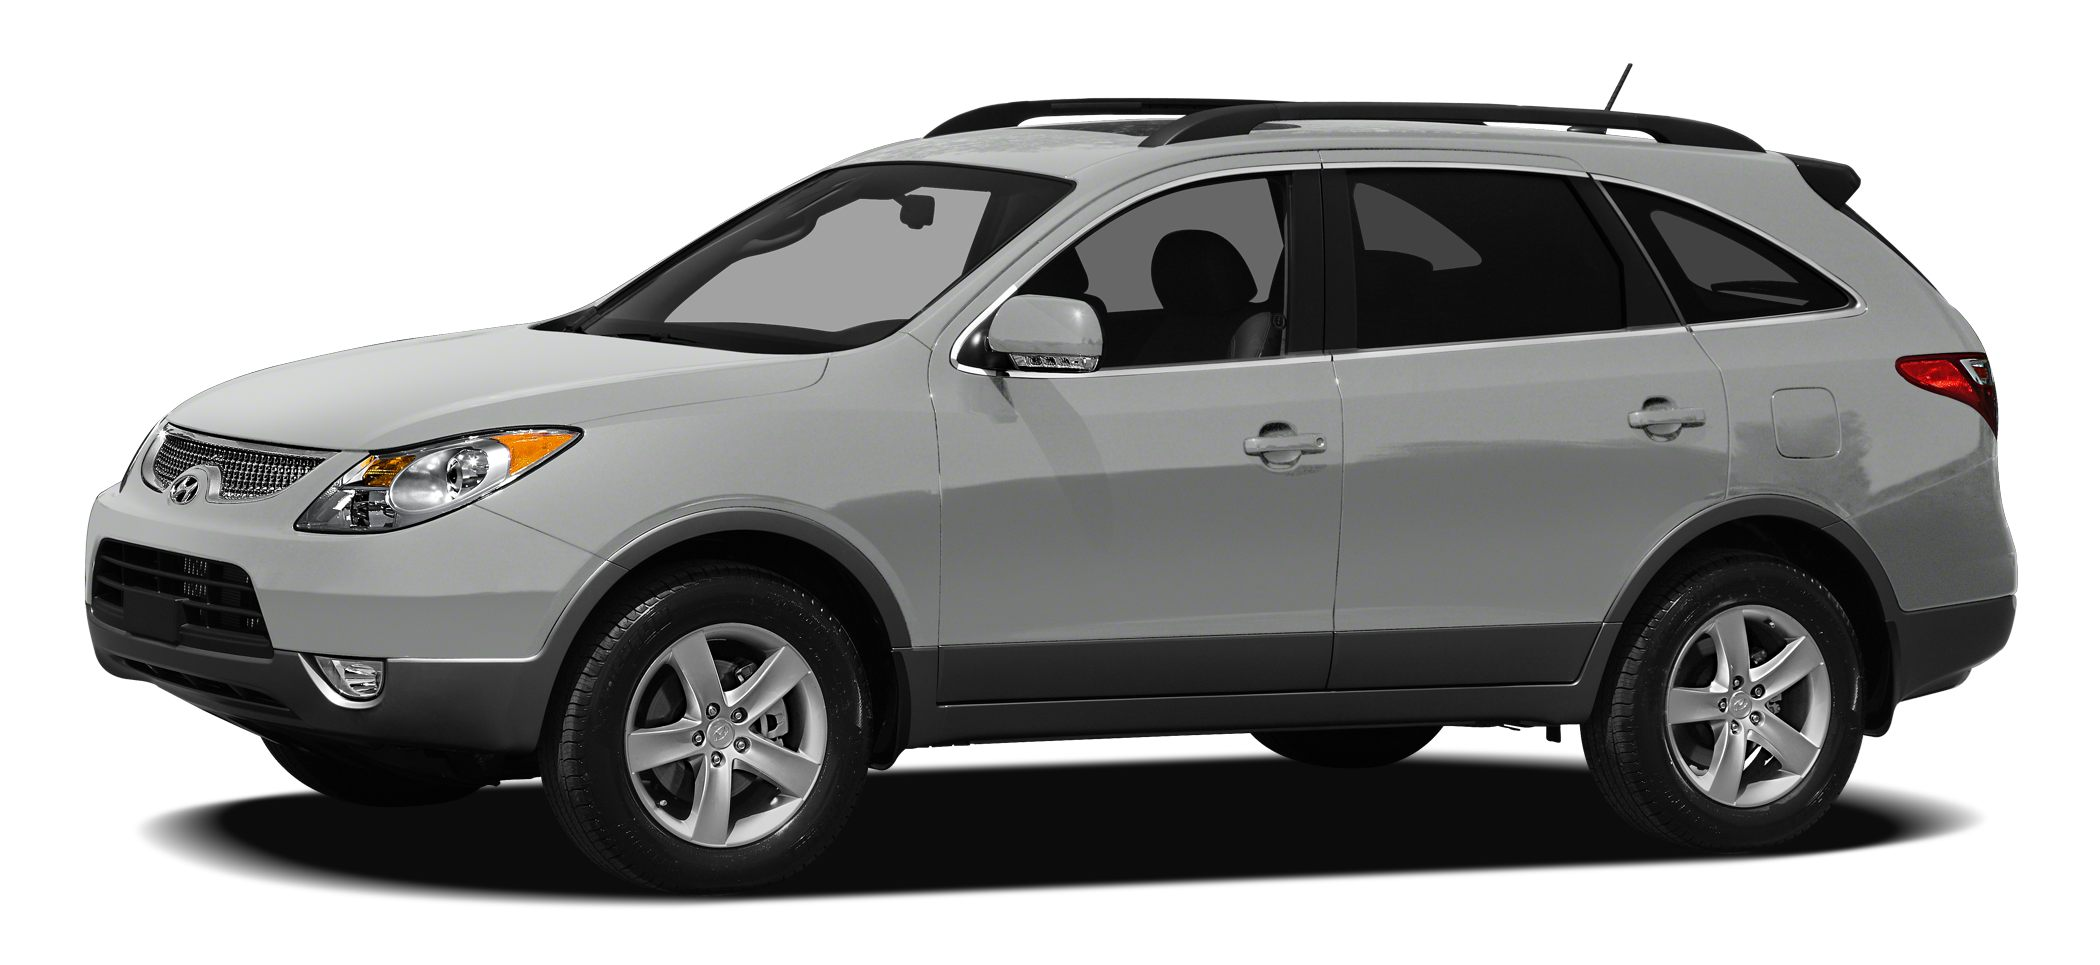 2012 Hyundai Veracruz Limited Boasts 22 Highway MPG and 17 City MPG Carfax One-Owner Vehicle Thi